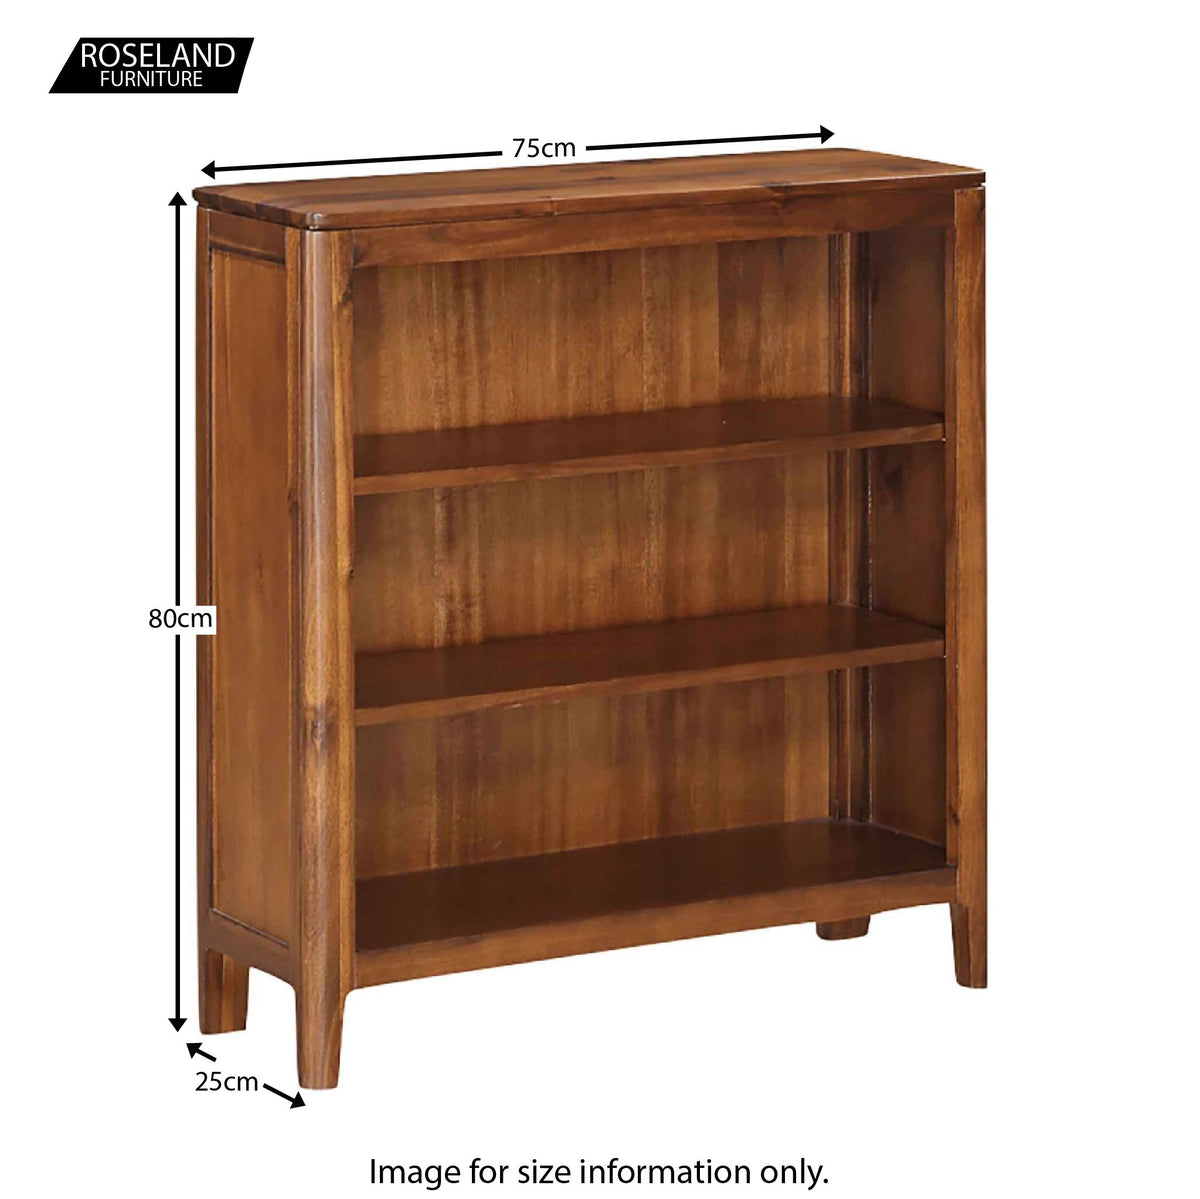 Dunmore Acacia Small Low Bookcase with 3 Shelves - Size Guide